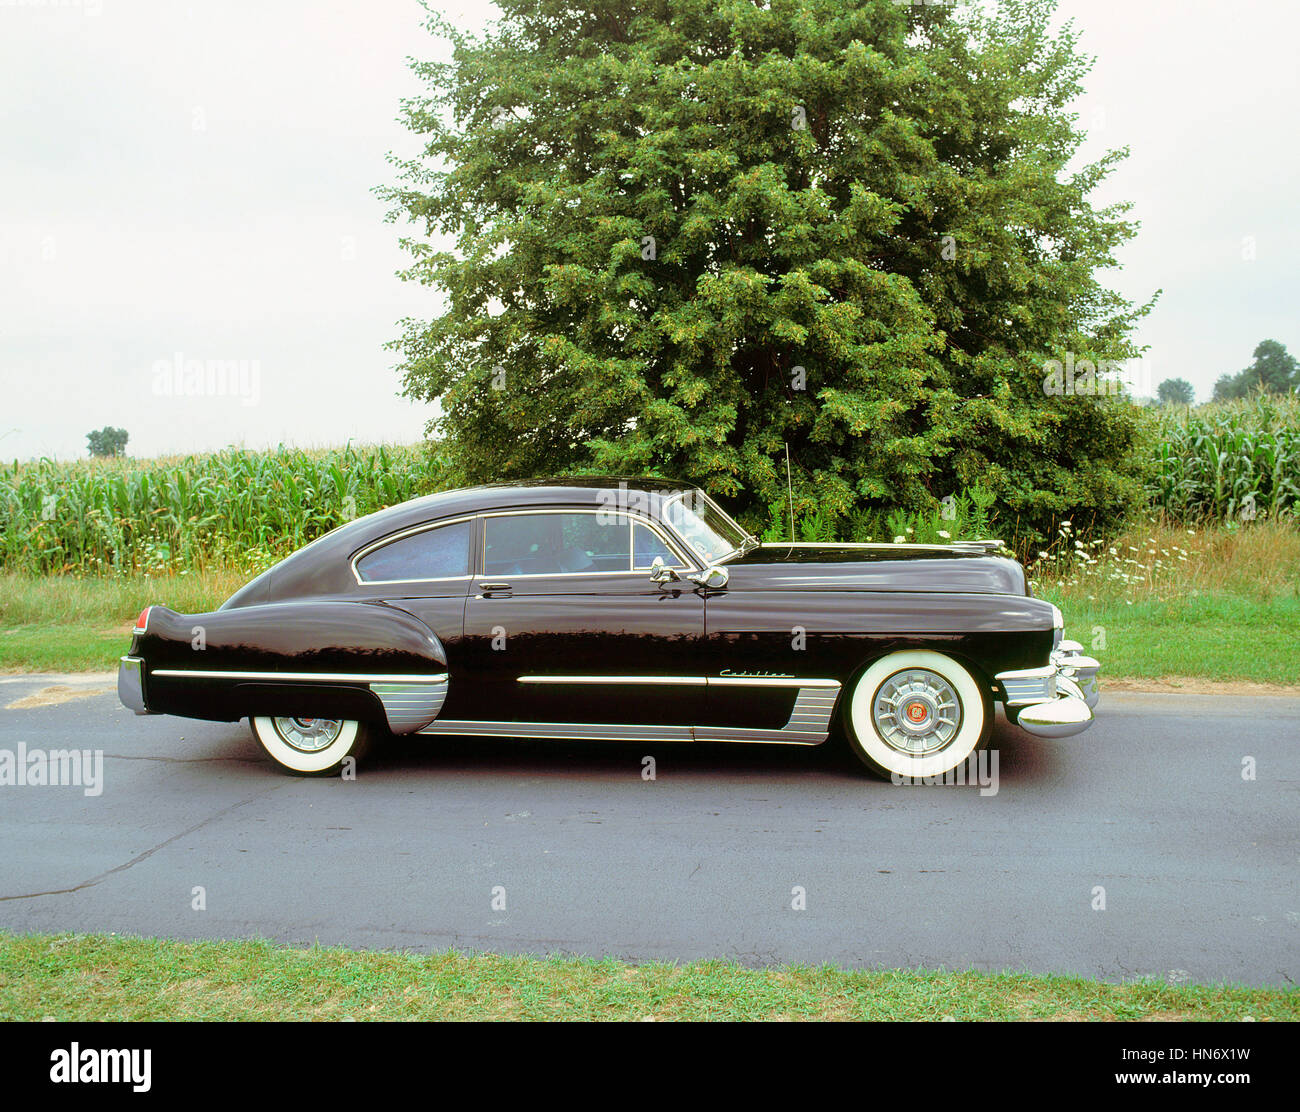 1949 Cadillac series 61 Fastback - Stock Image